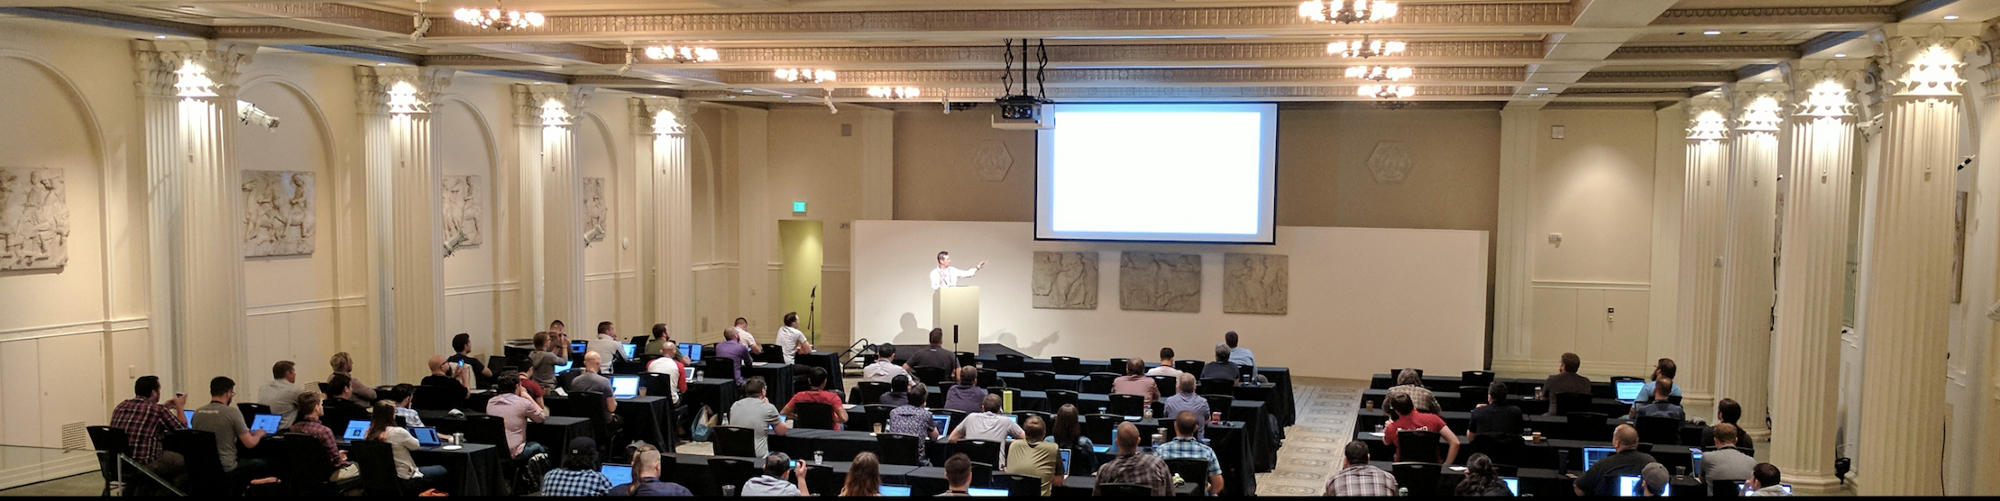 Talk by Chris Chandler of T-Mobile at the Inaugural Sensu Summit